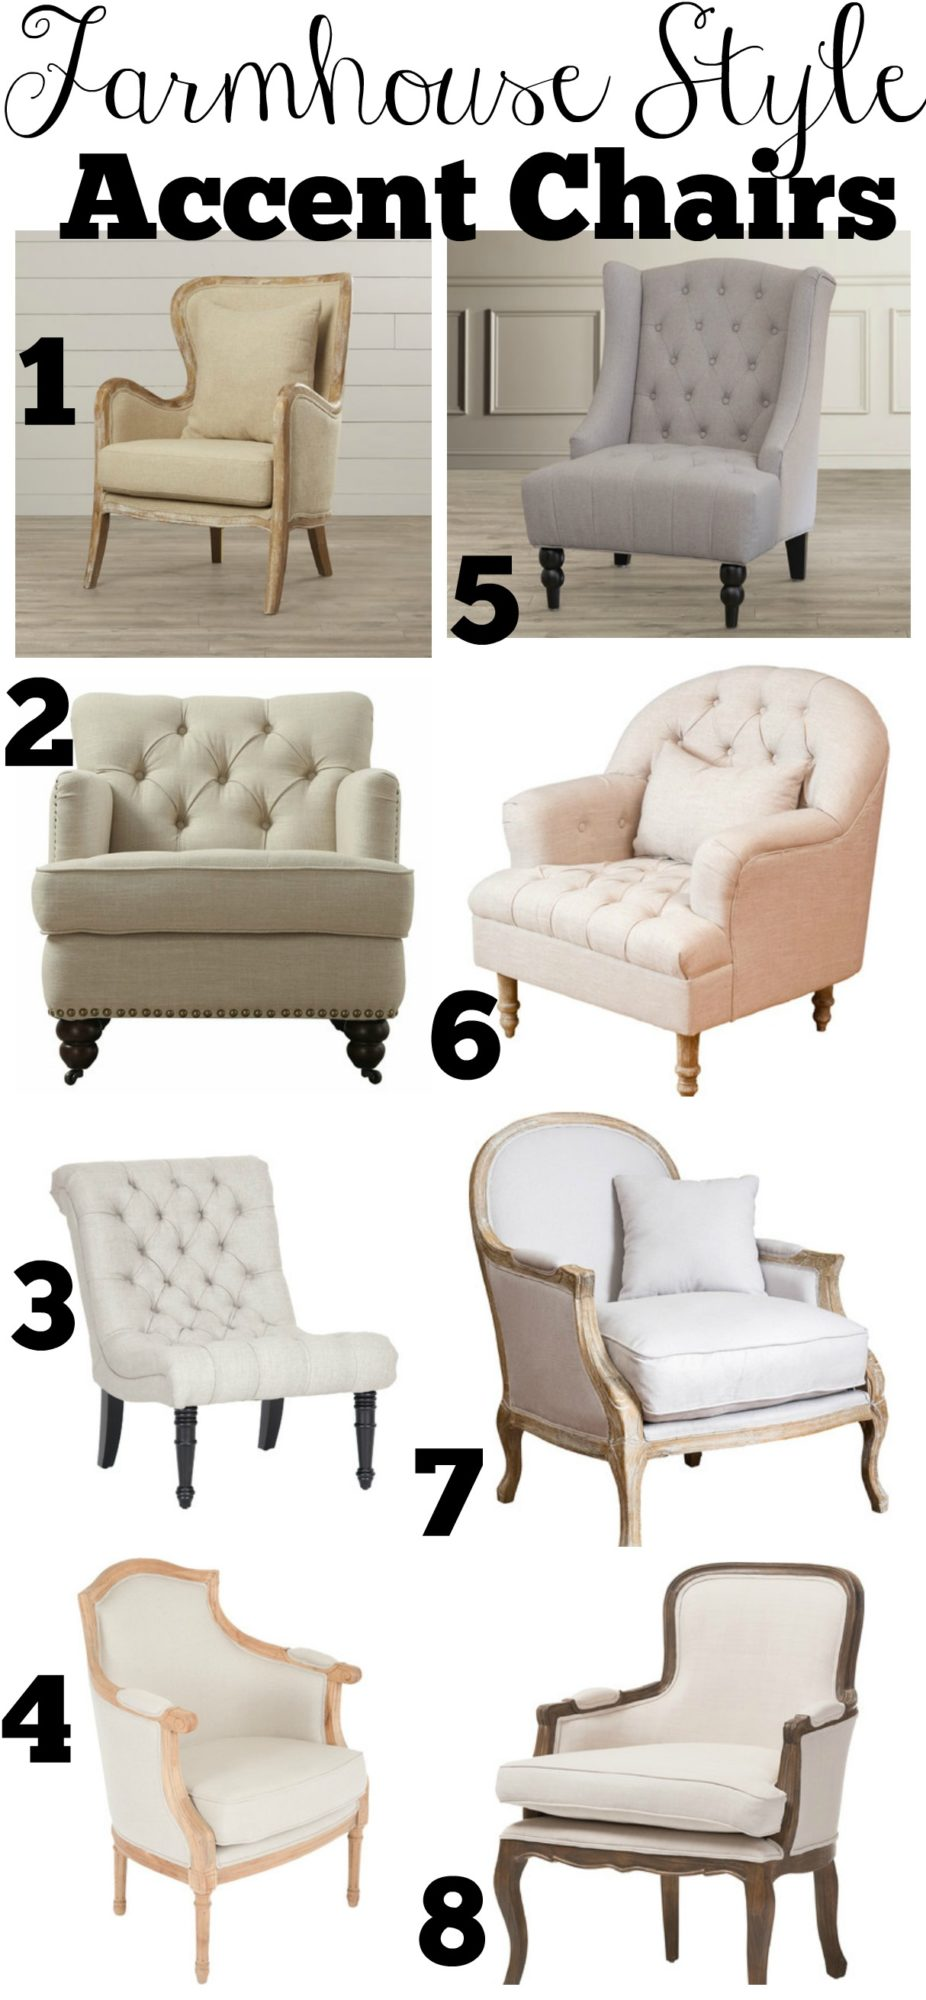 Affordable Farmhouse Style Accent Chairs